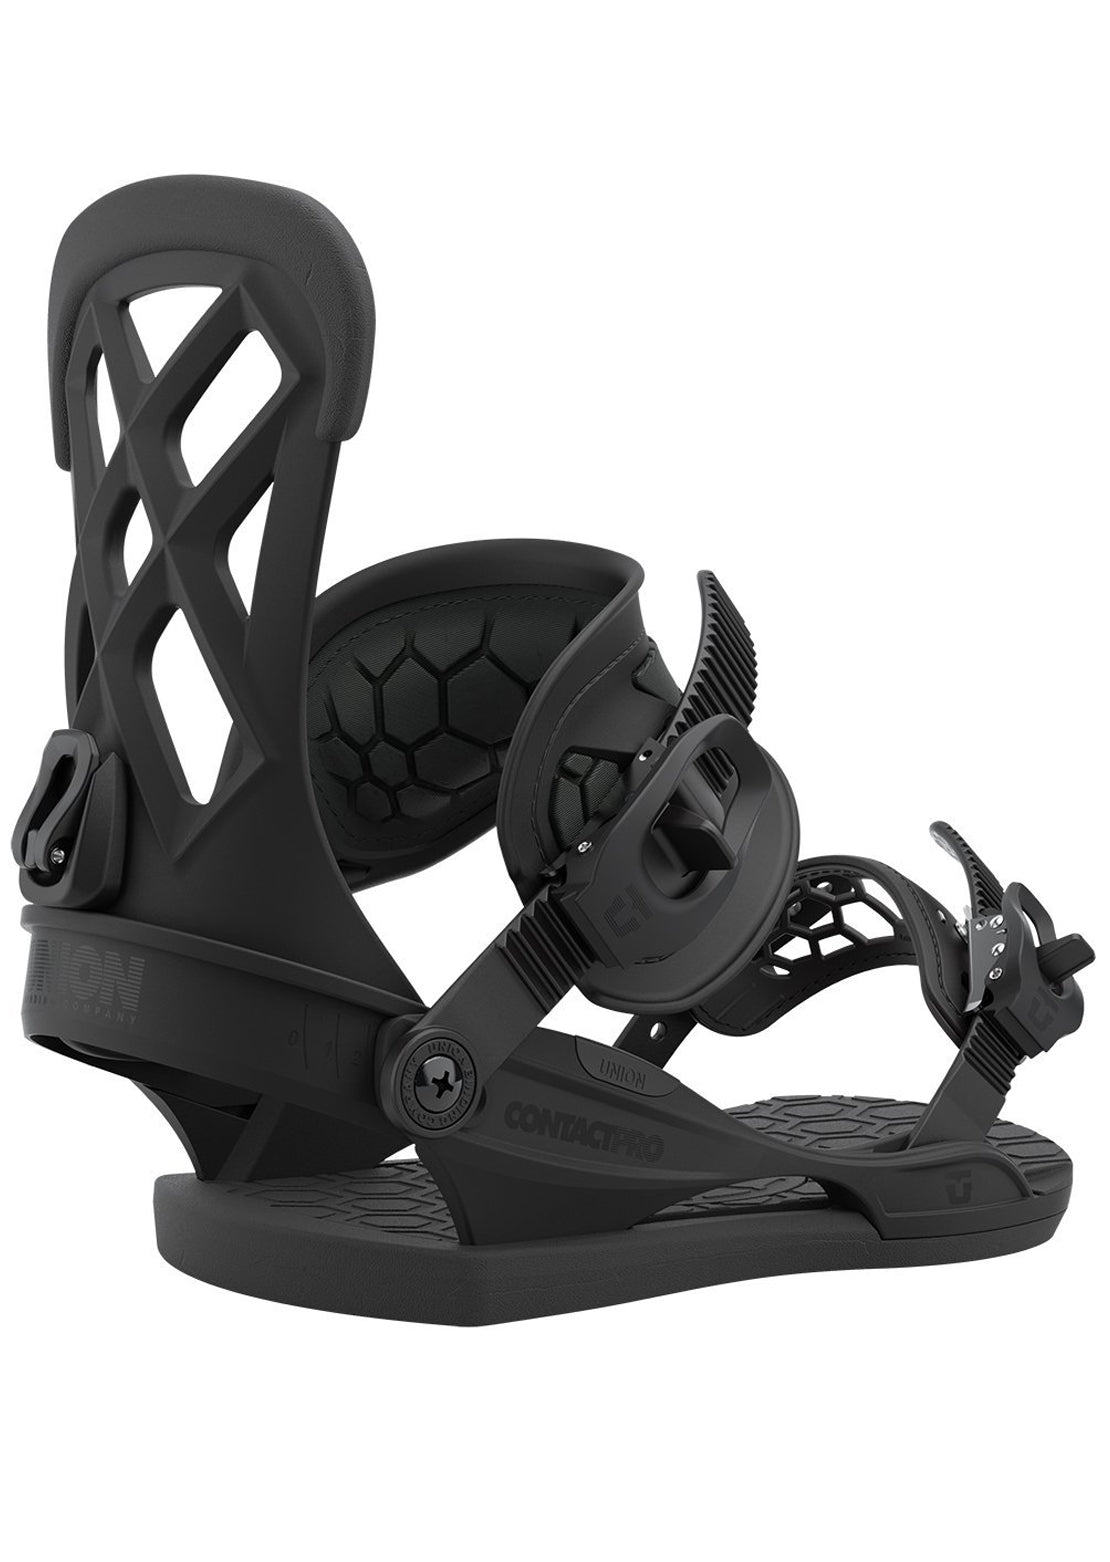 Union Men's Contact Pro Snowboard Bindings Black